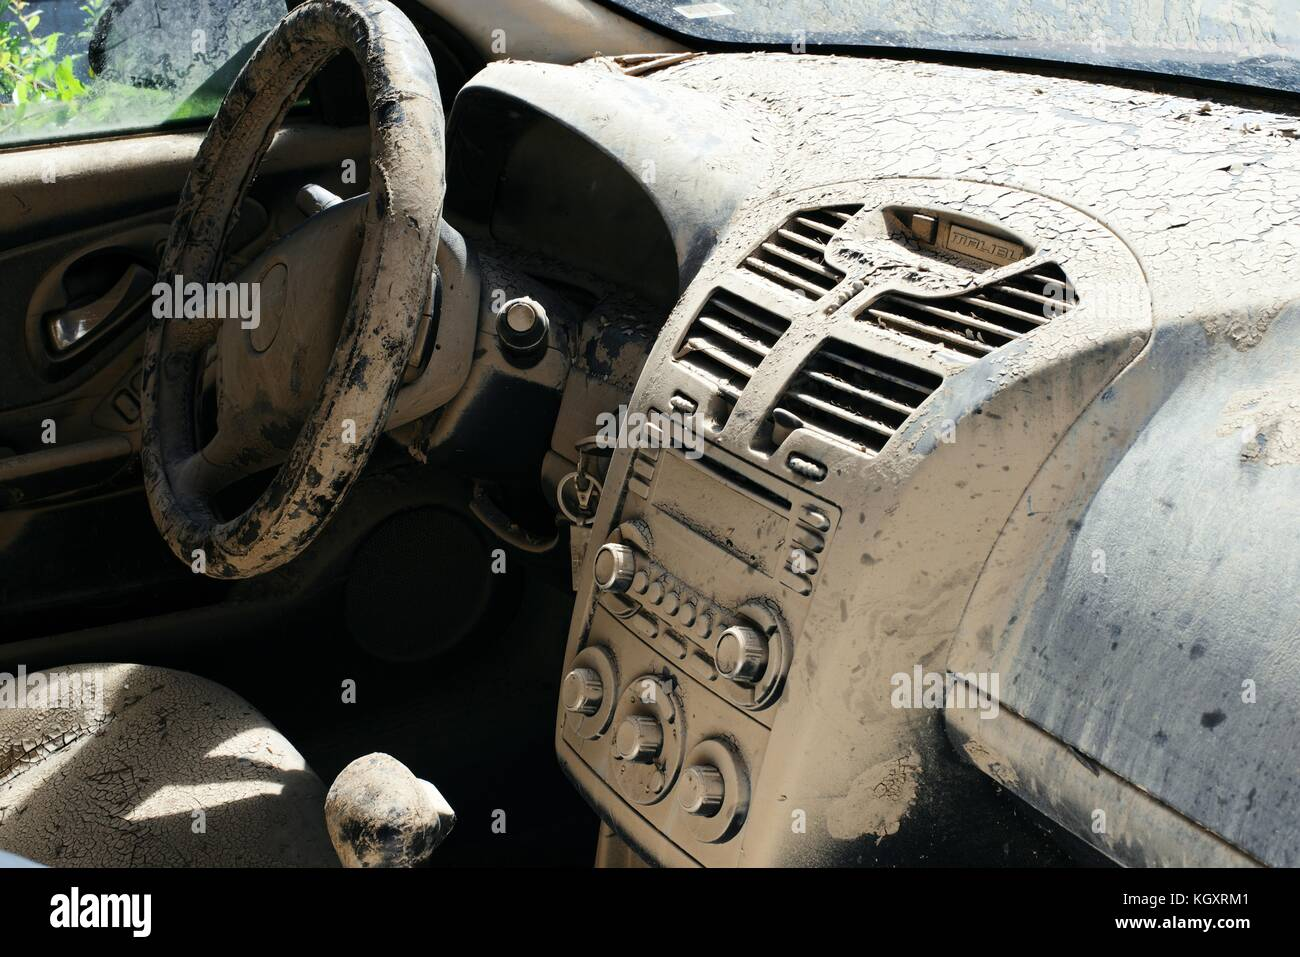 Dirt and mud cakes a damaged car after the flooding caused by Hurricane Maria November 1, 2017 in Toa Baja, Puerto - Stock Image